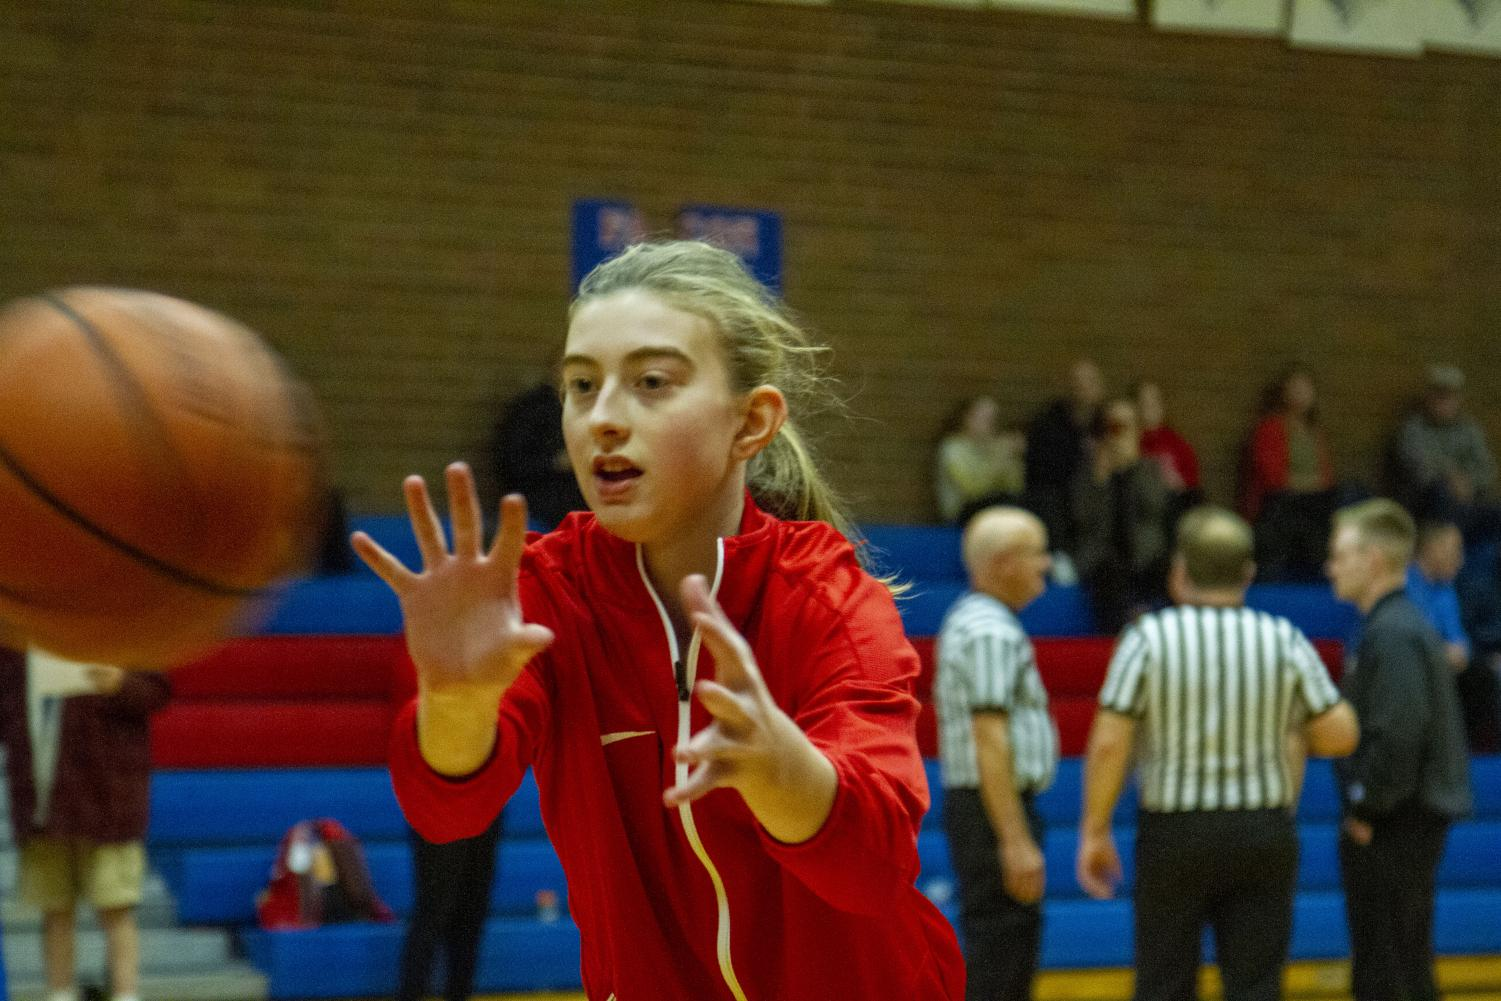 Freshman Eliza Buerk wants to help her team win the state championship this year.